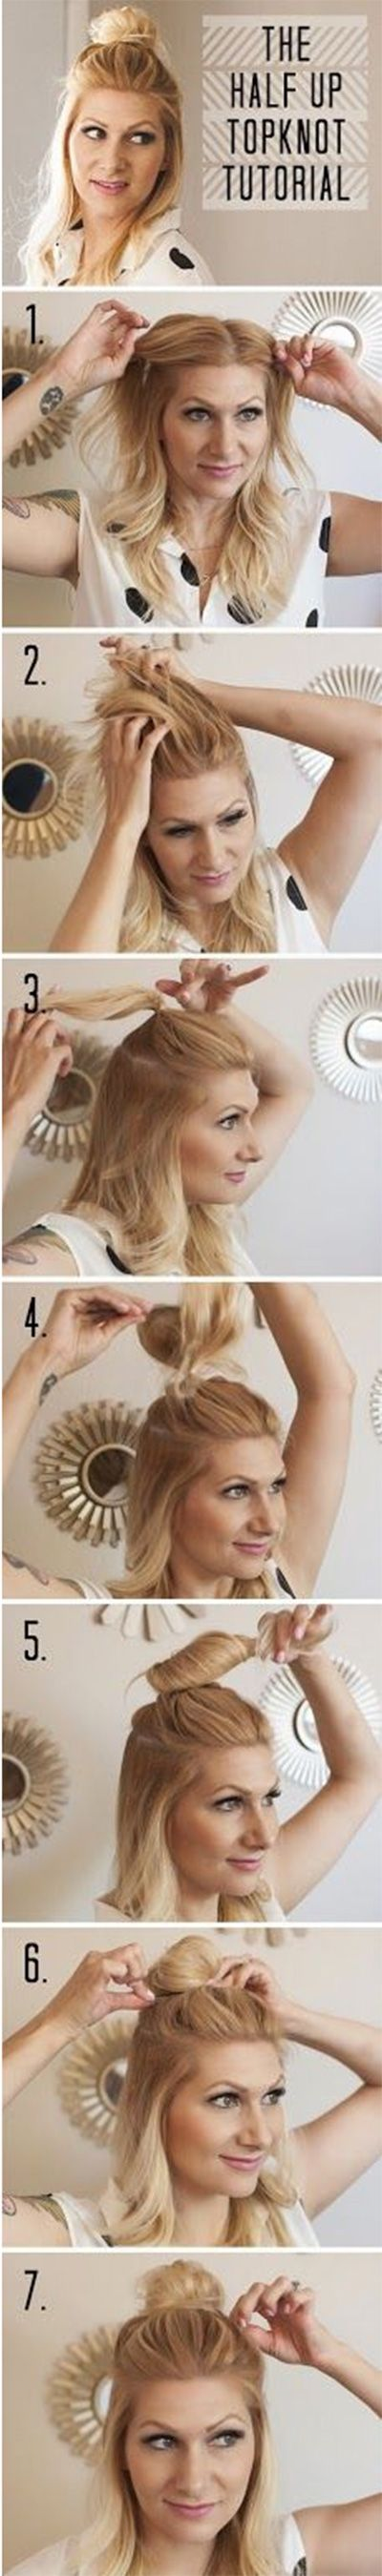 12 Hacks to Get the Perfect Half-Up Bun, Your Fave Celebs' Go-To Hairstyle